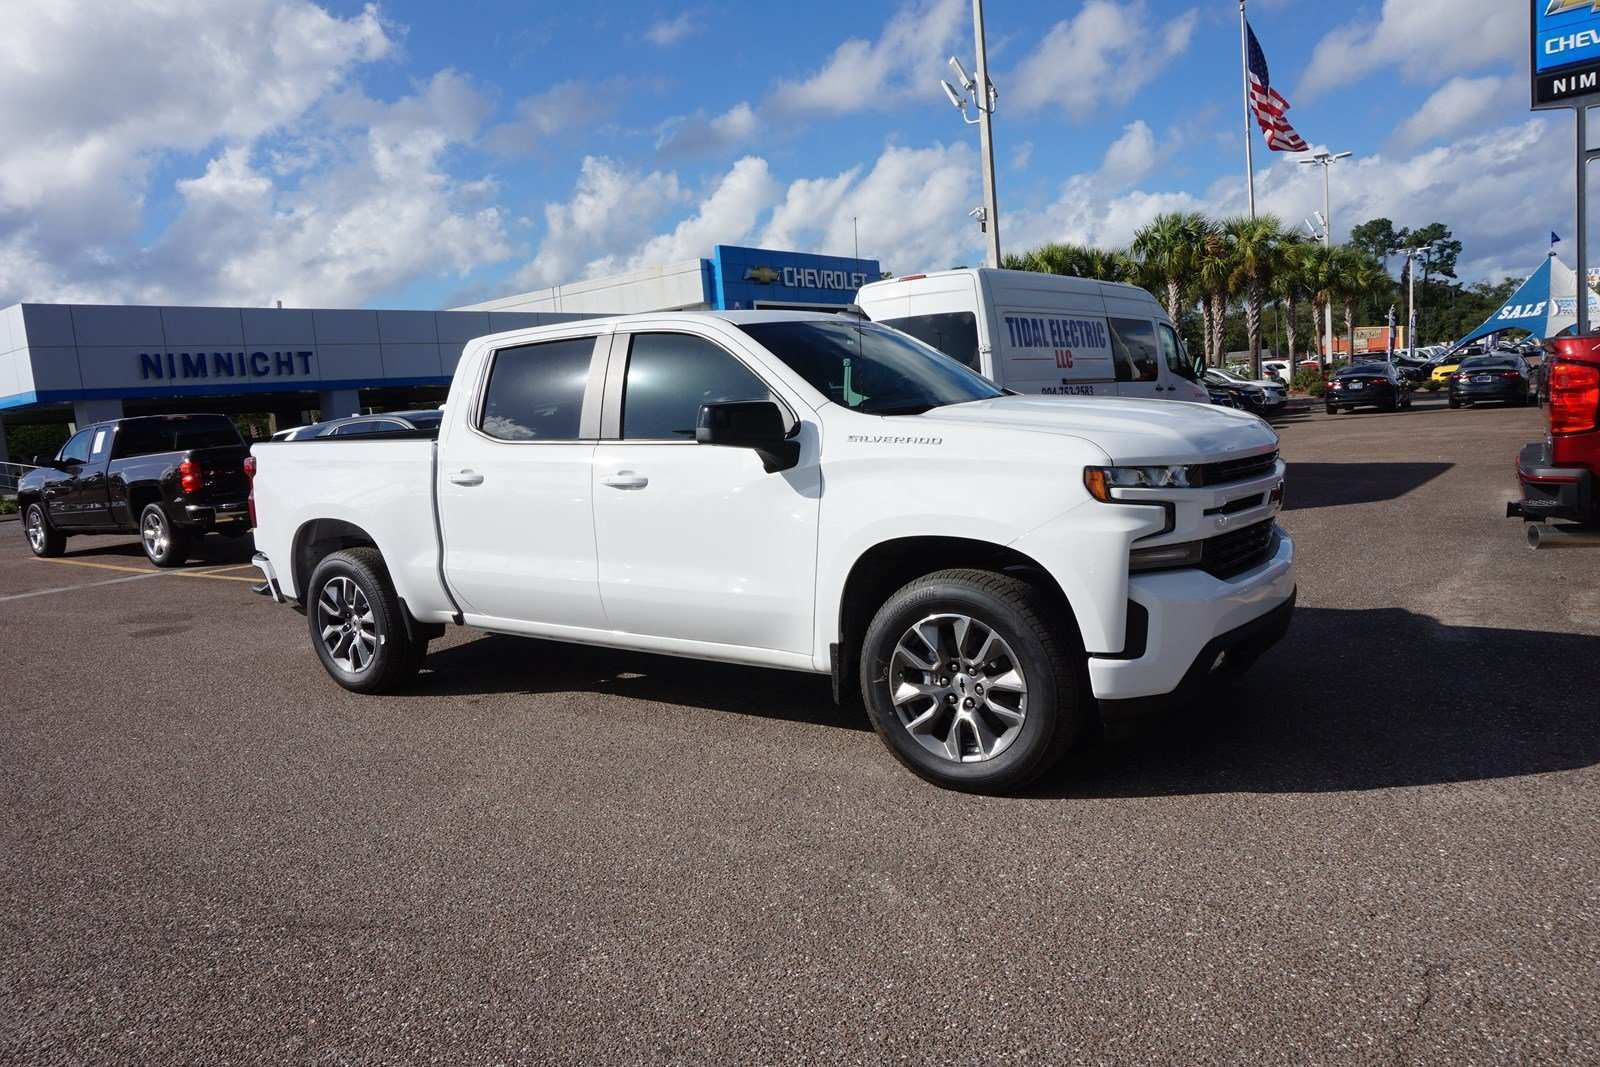 98 The Best 2019 Chevrolet Silverado First Drive